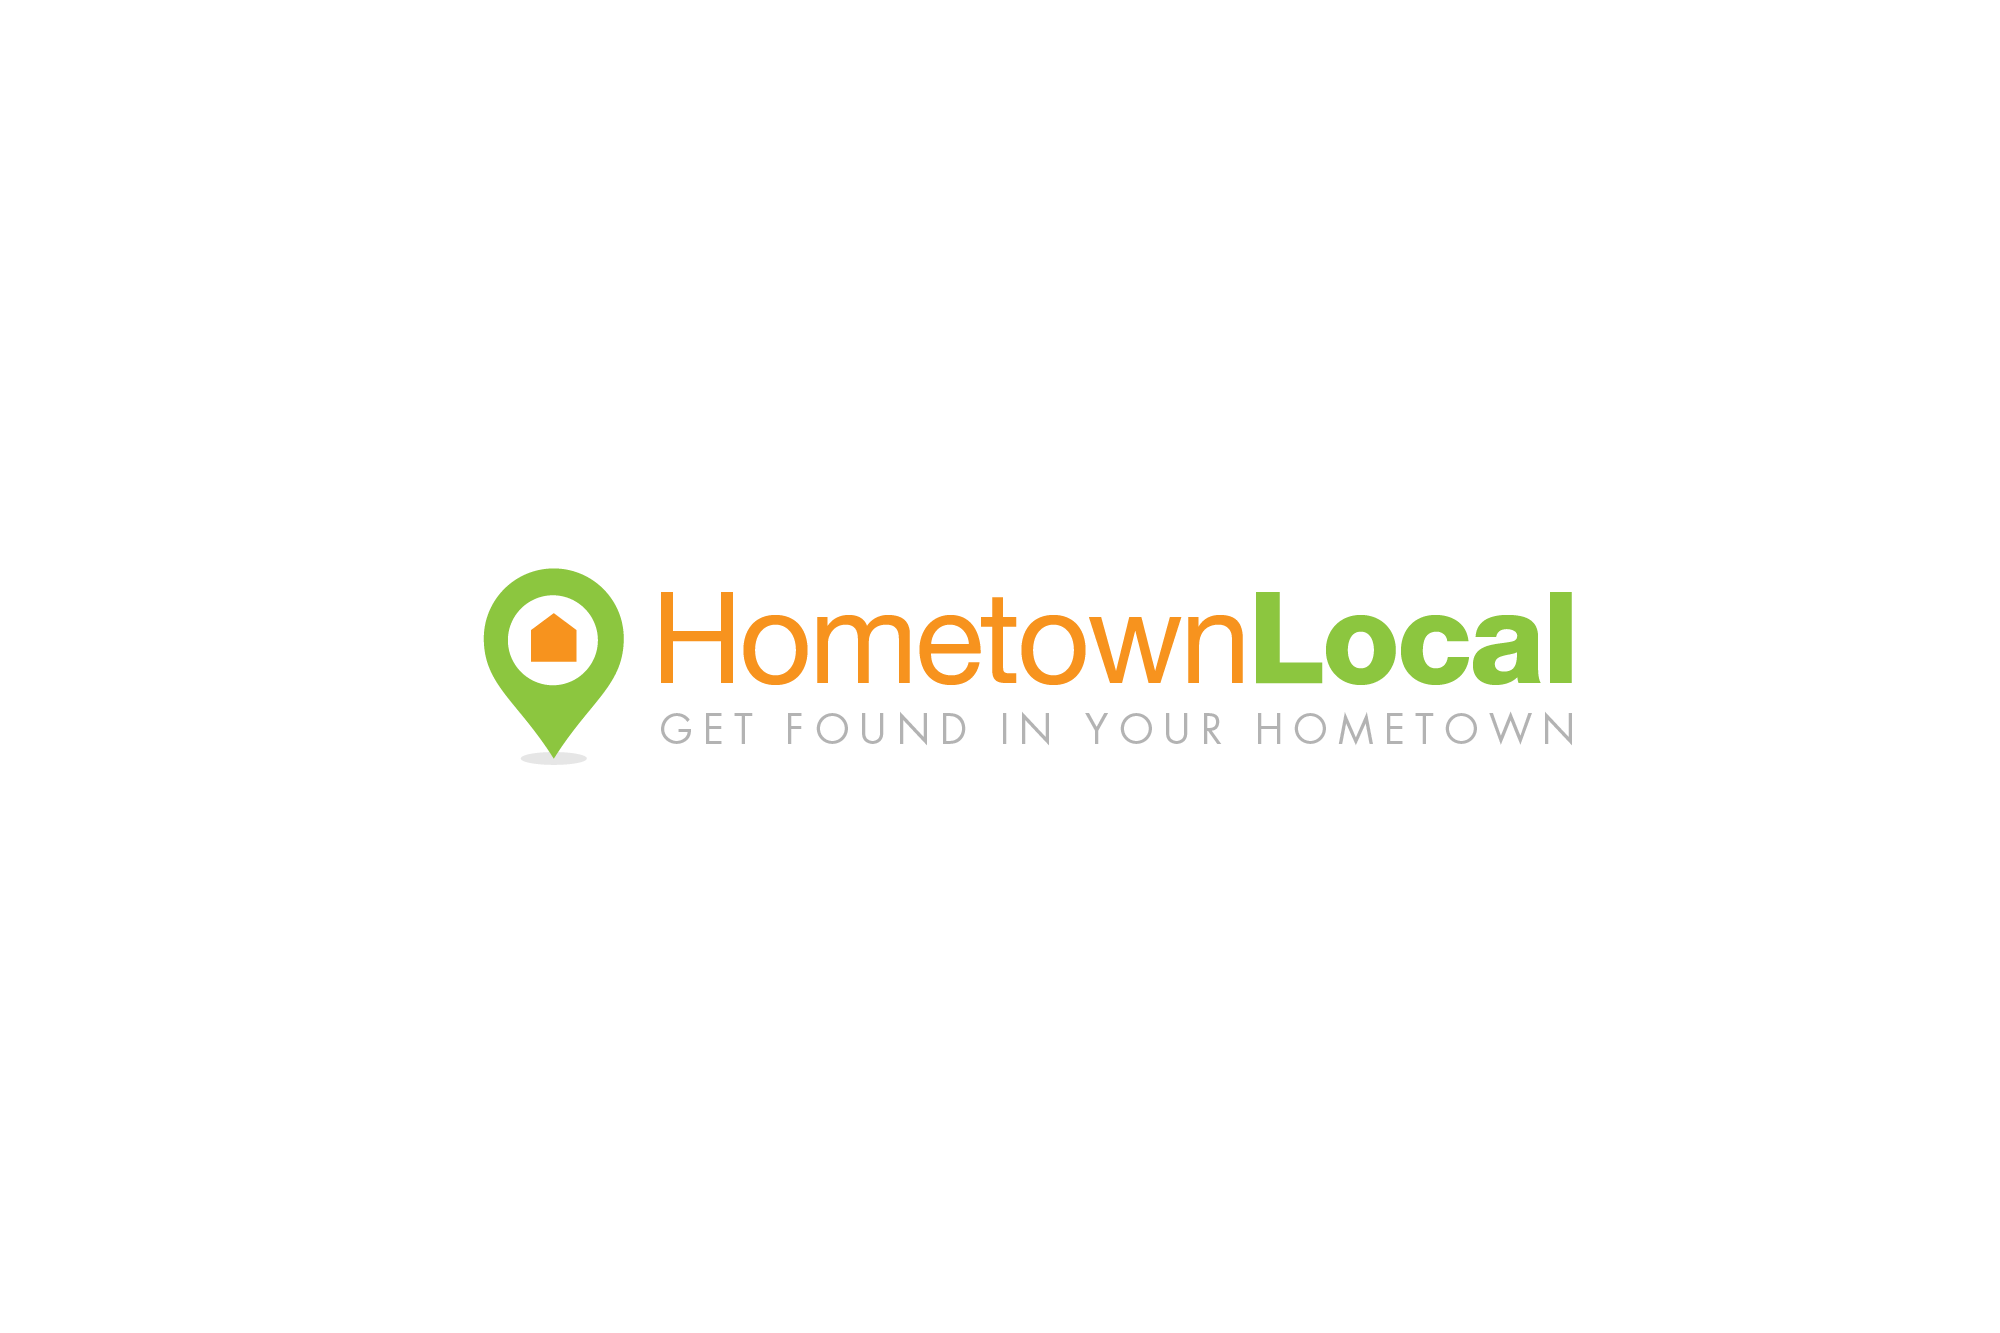 Create the next winning logo for HometownLocal